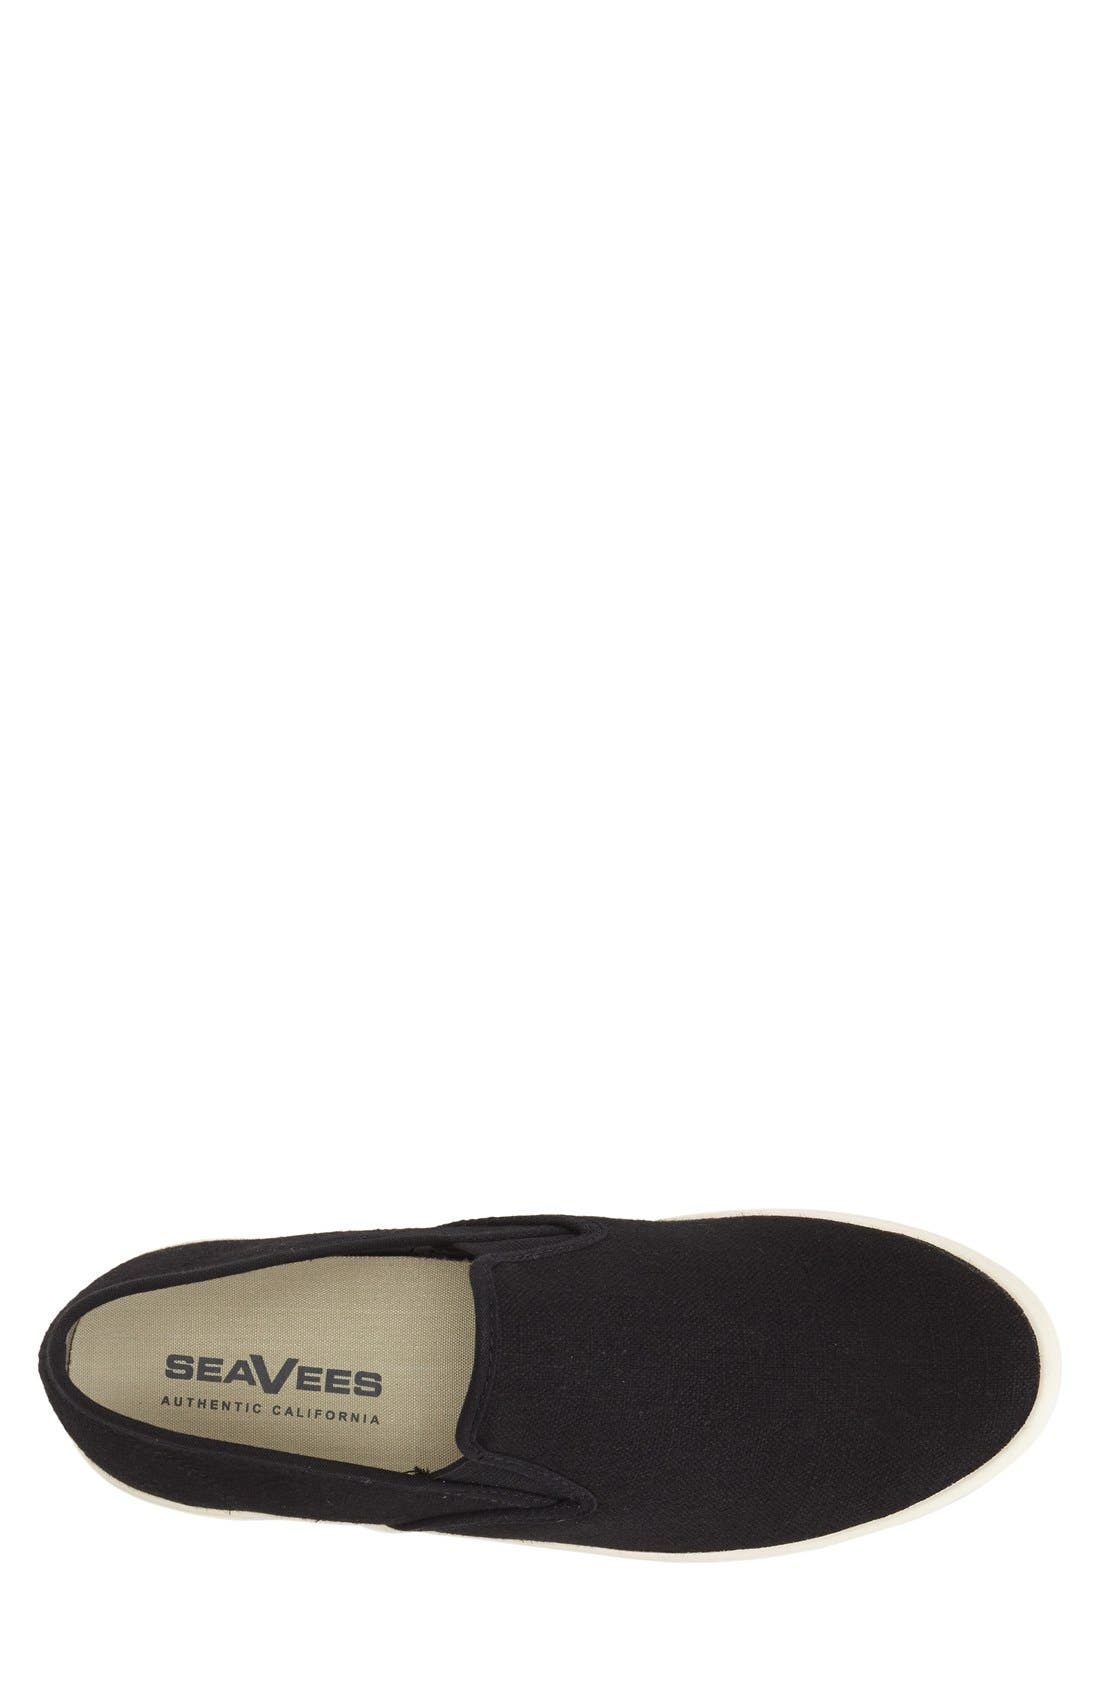 Alternate Image 3  - SeaVees '02/64 Baja' Slip-On (Men)